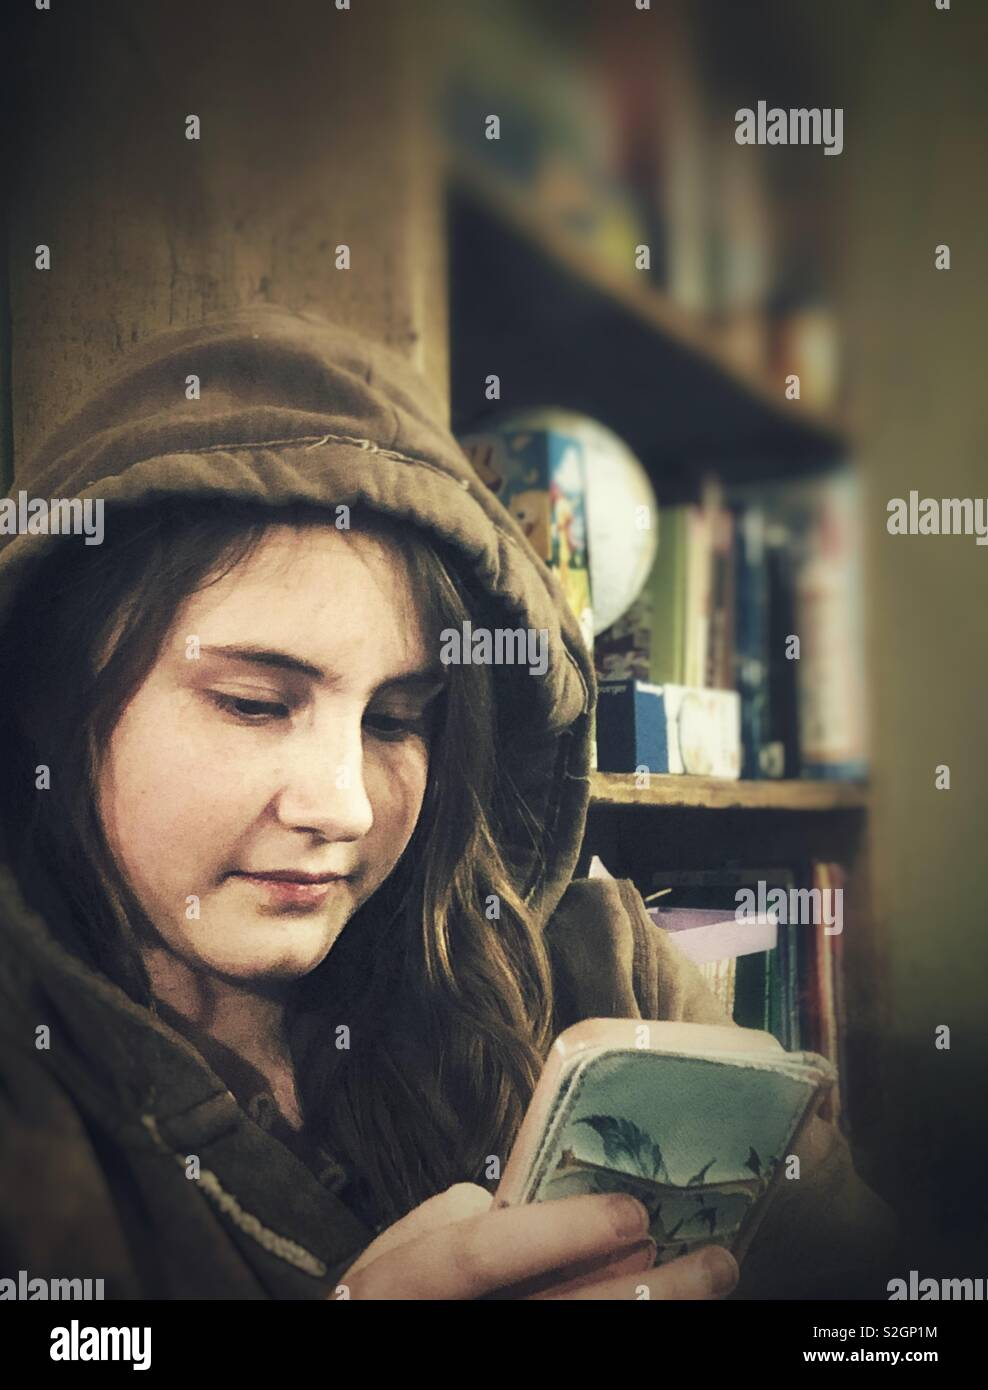 Candid portrait of teenage girl reading on her smartphone - Stock Image